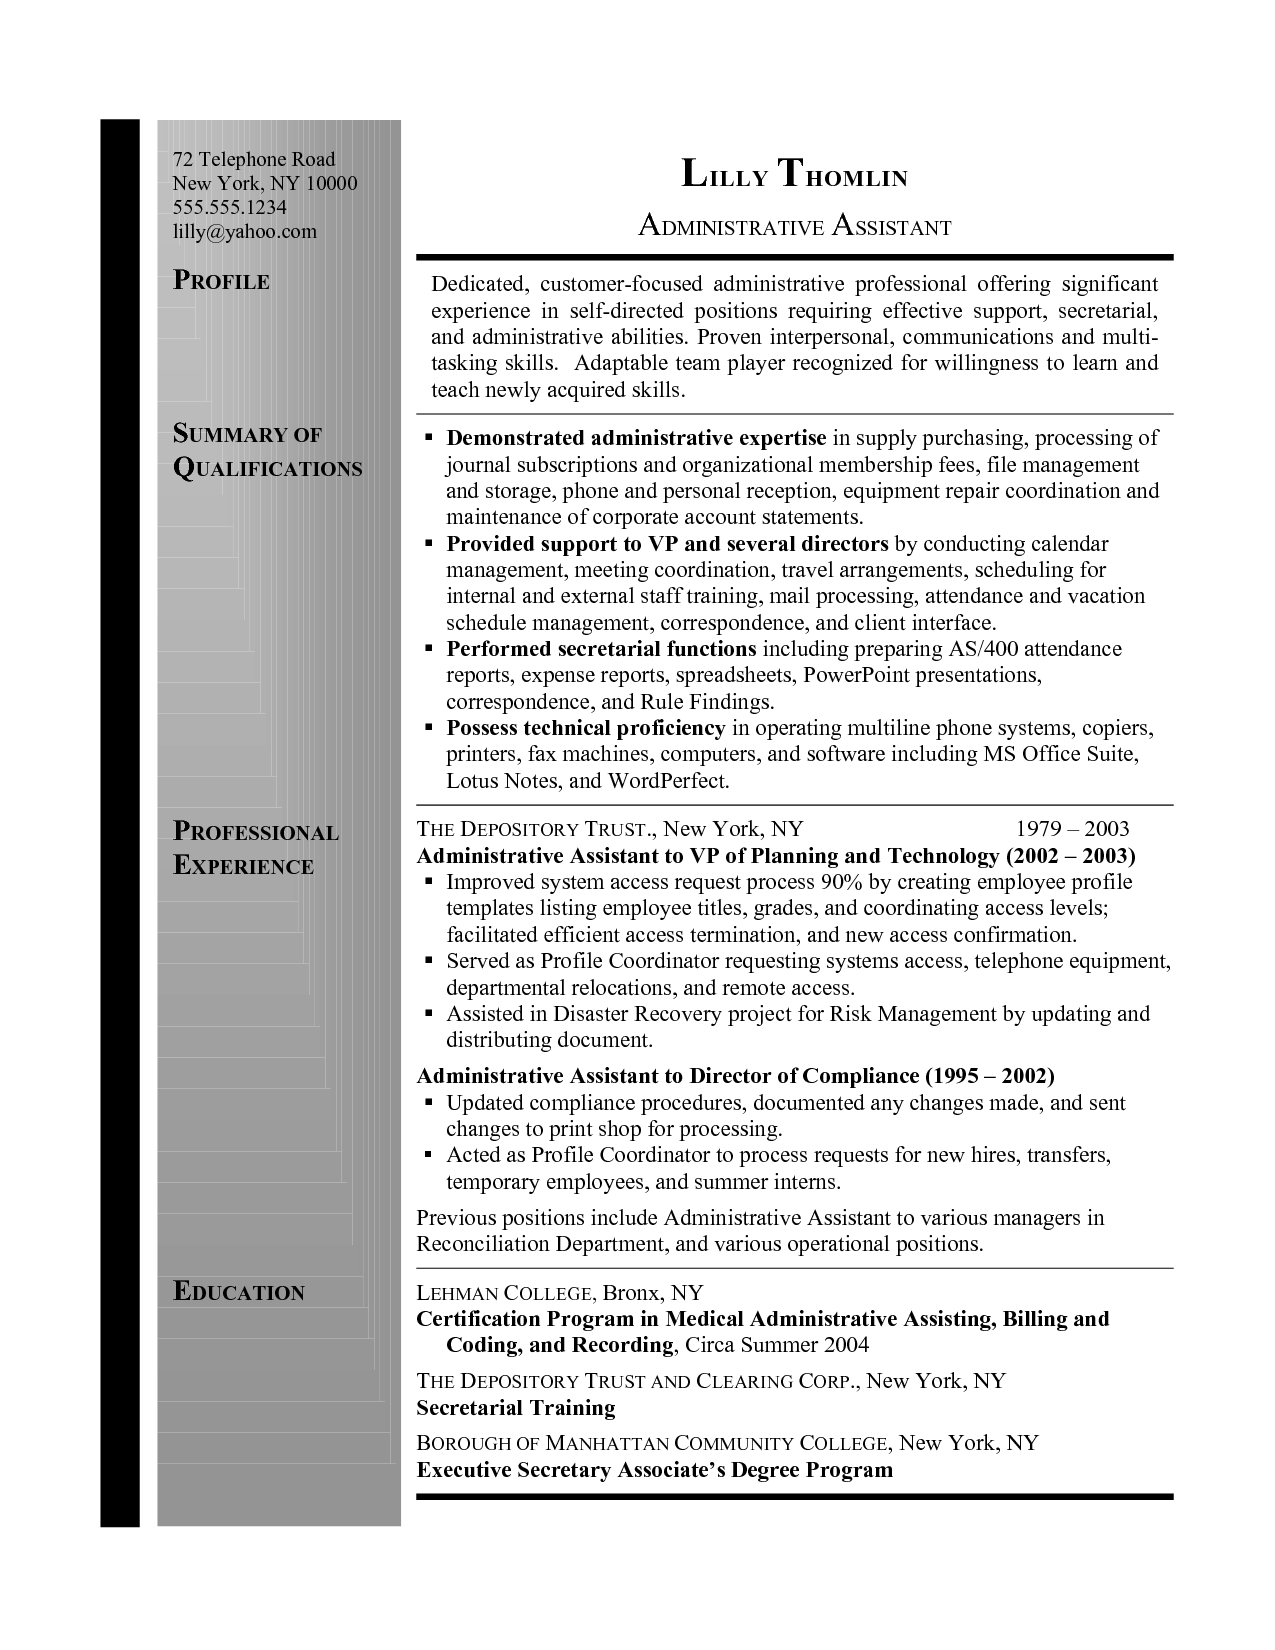 Secretary Resume Example Is A Sample Resume For Executive Assistant With  Secretarial Work In The Banking Industry